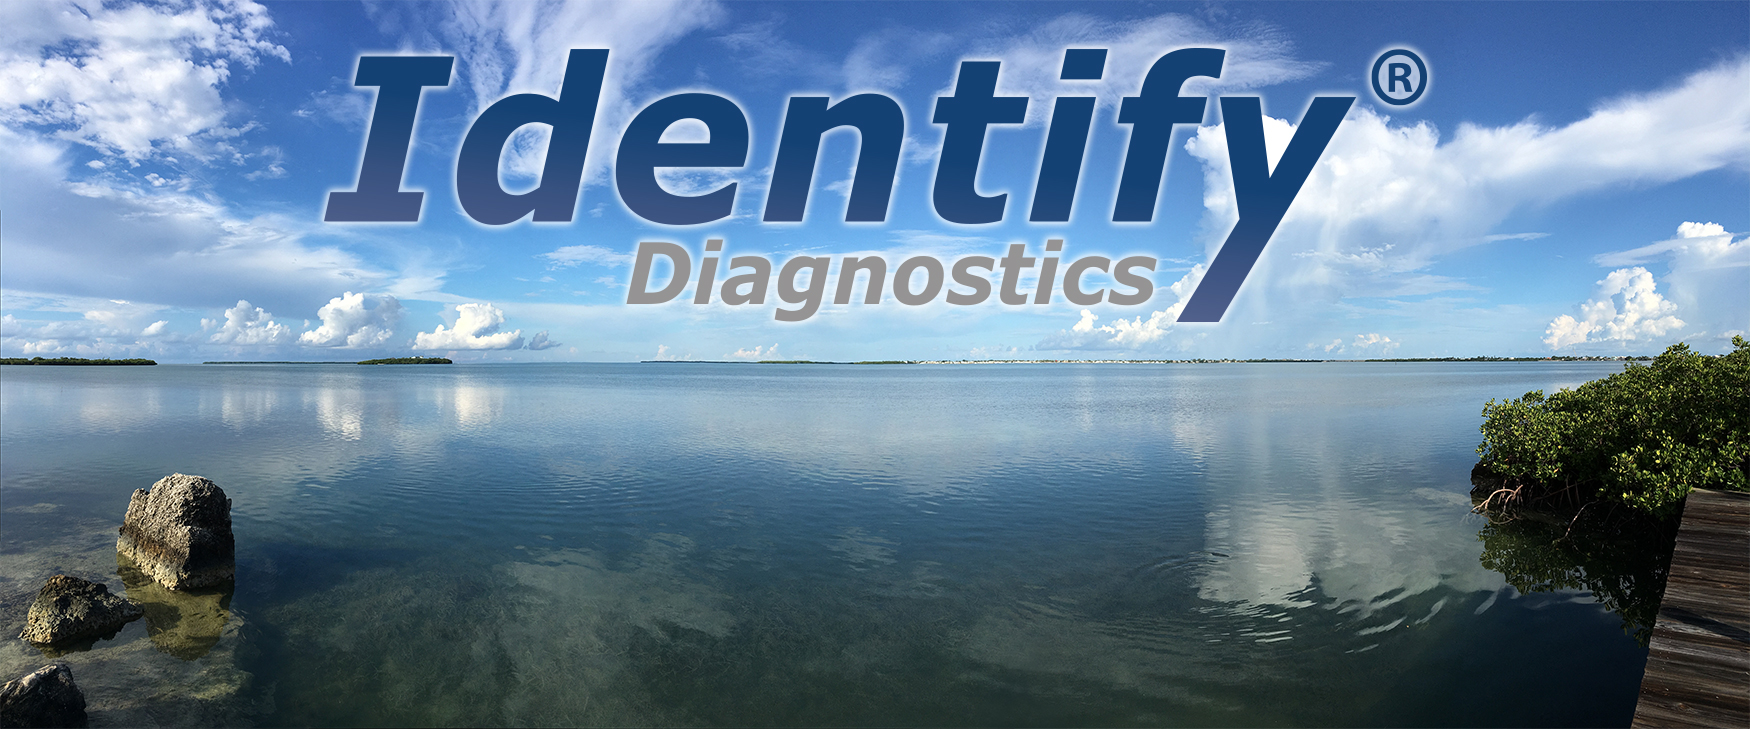 Identify Diagnostics Drug Test Cups - CLIA Waived